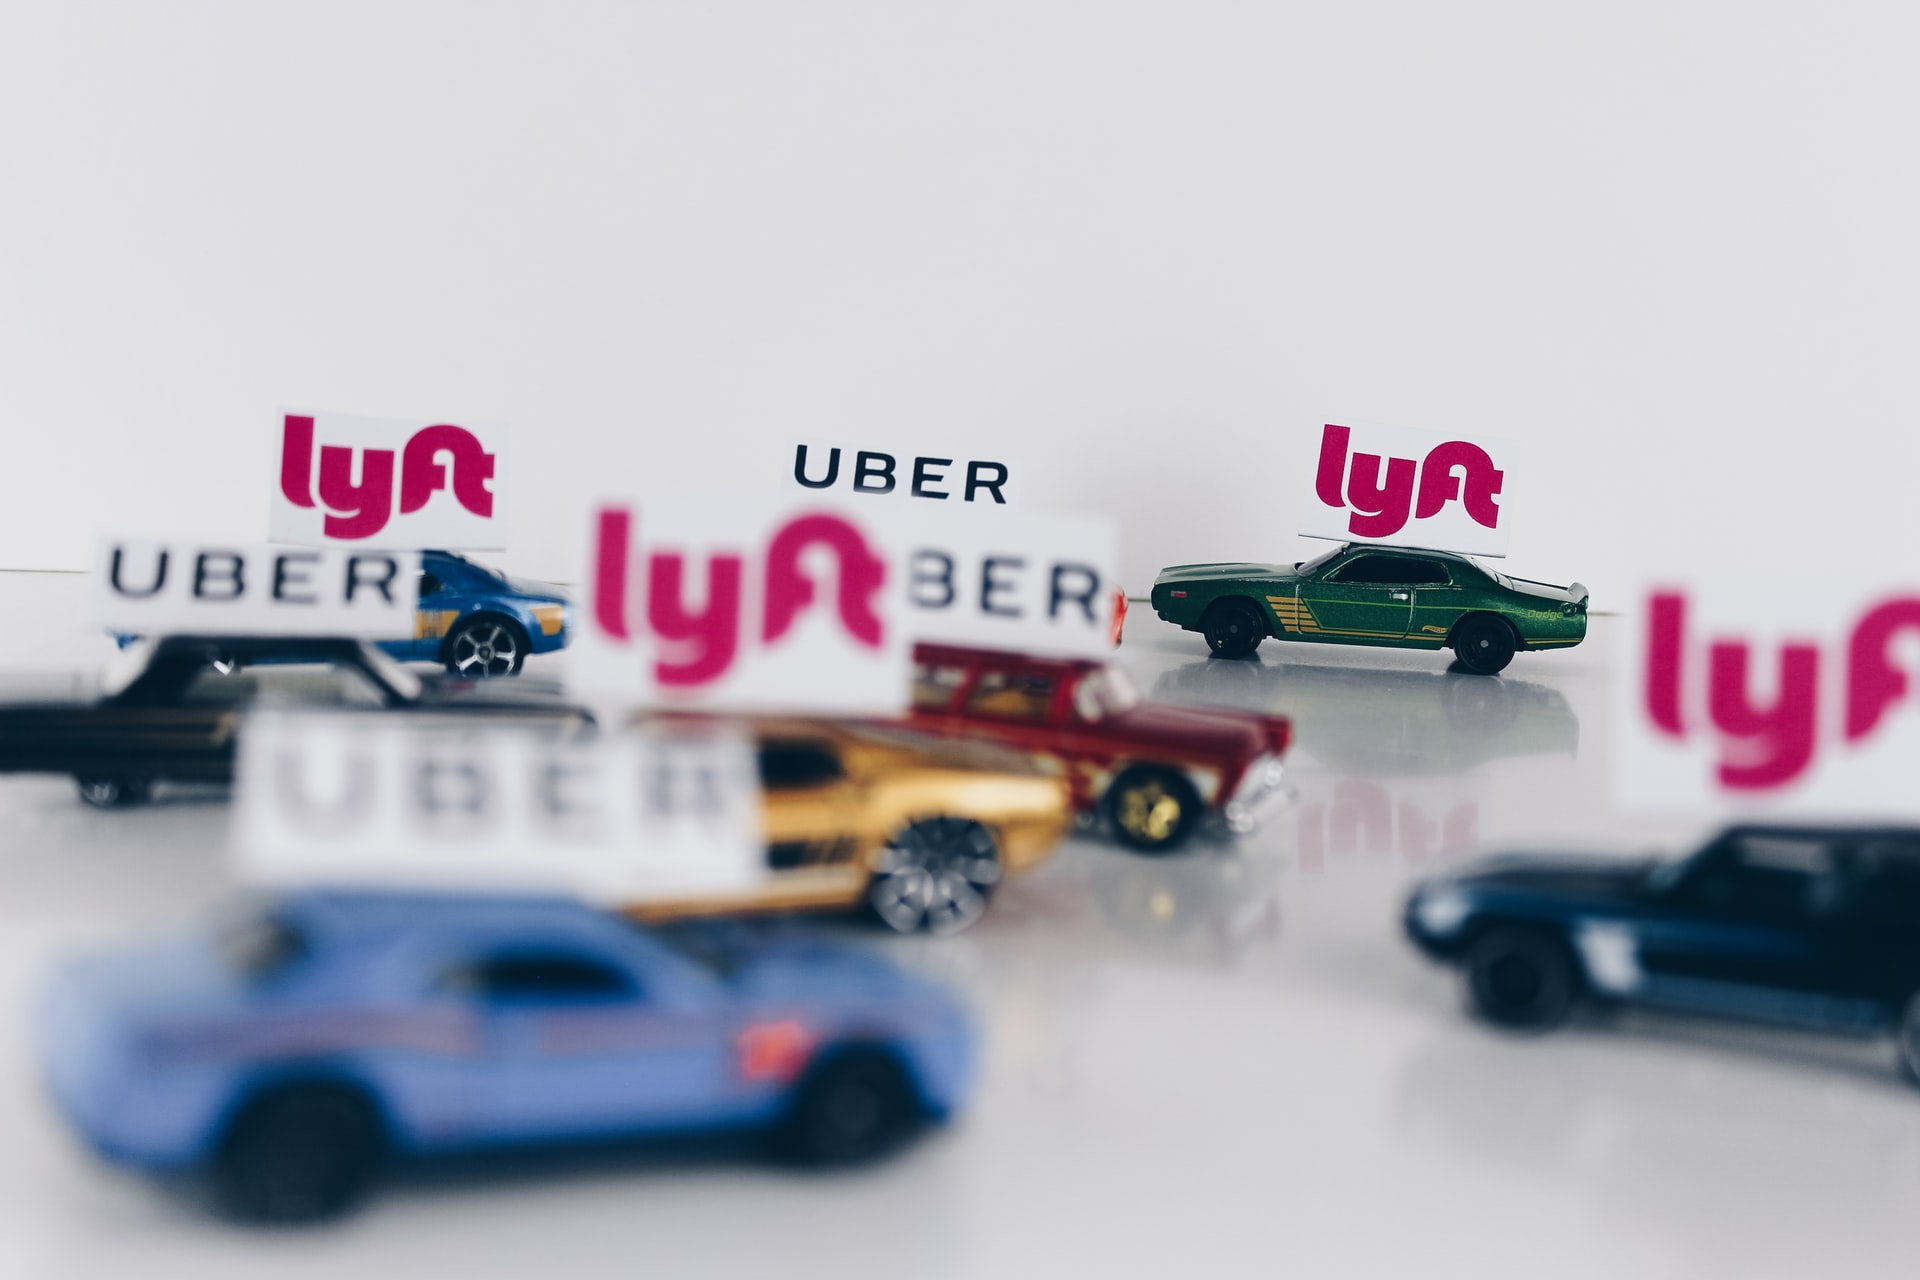 Uber and Lyft Awarded A Federal Contract Through the U.S. Government